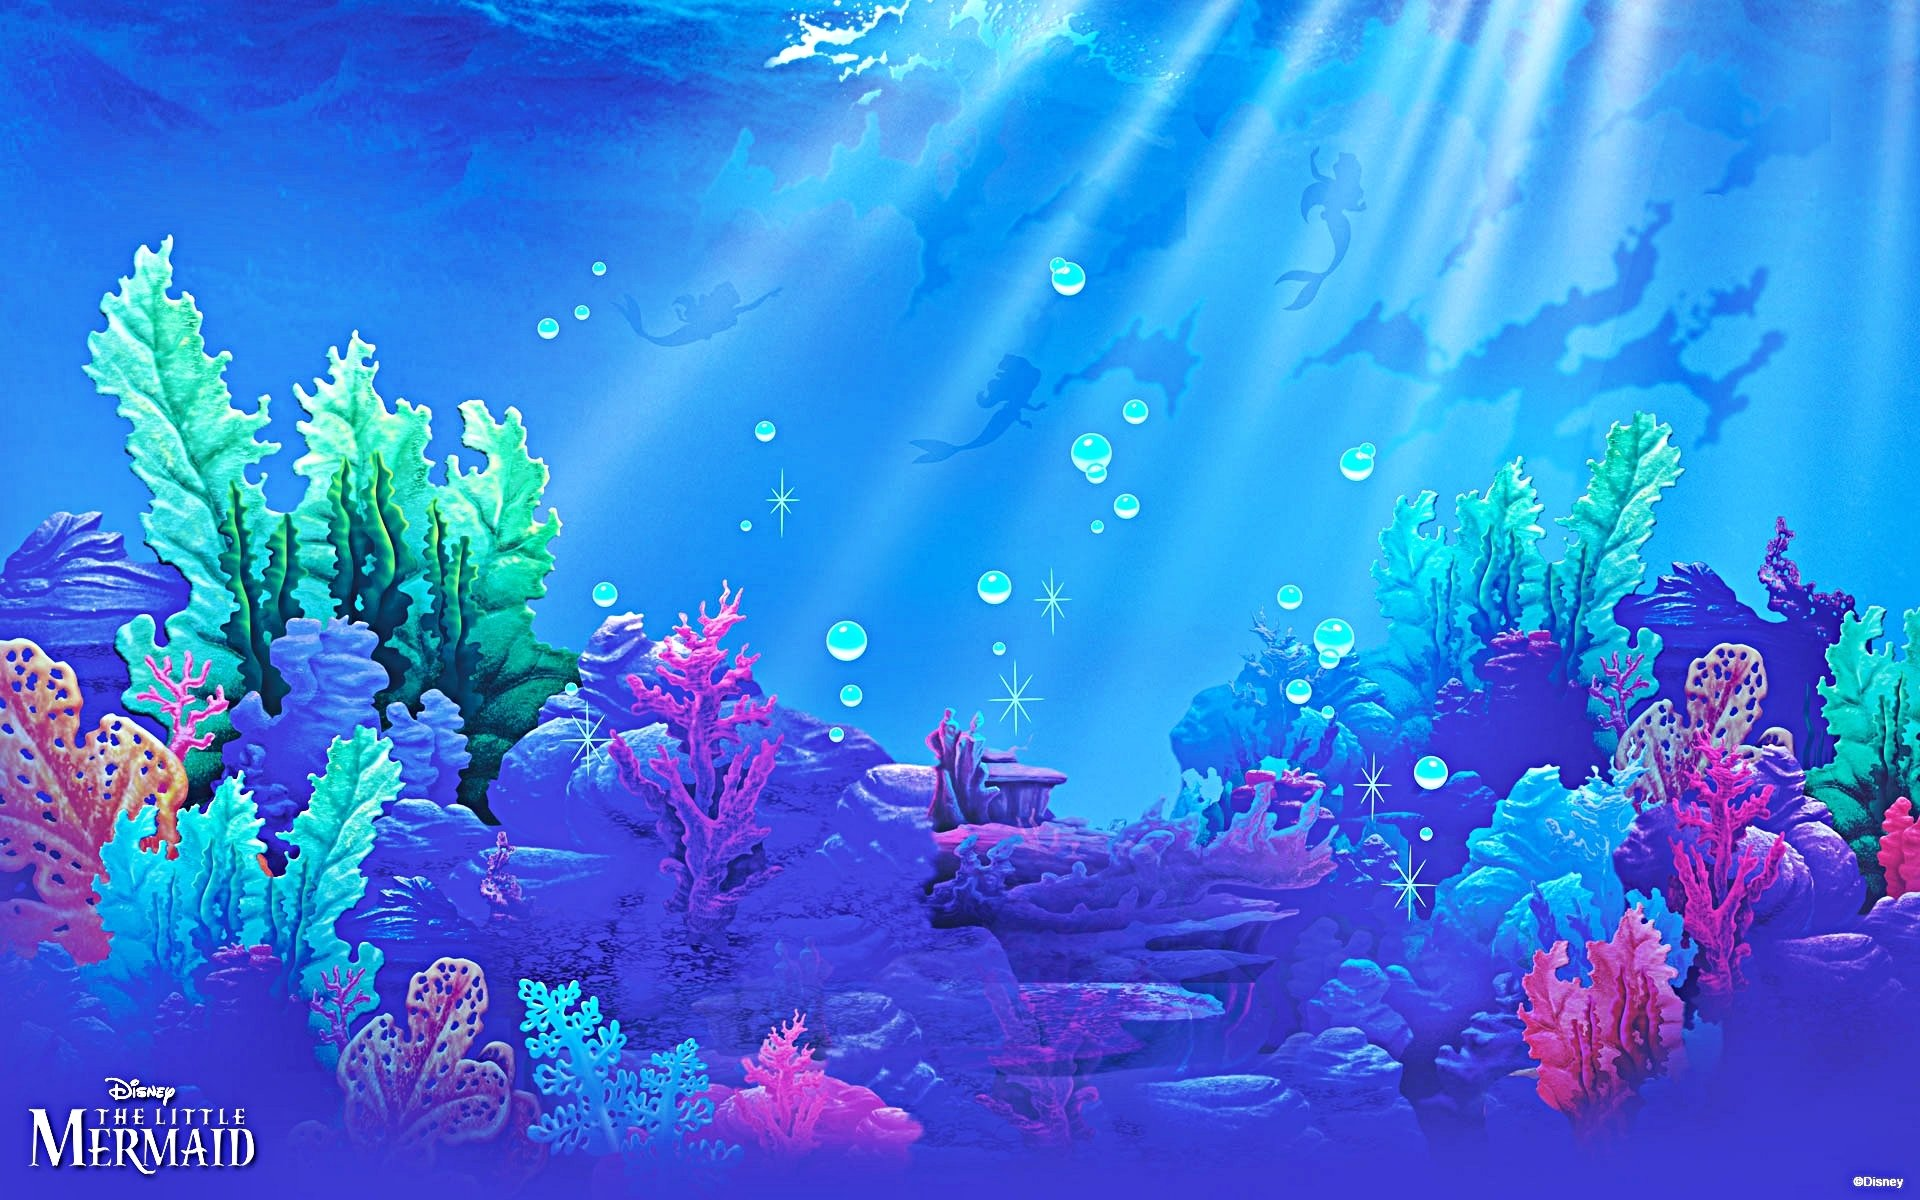 The Little Mermaid HD Wallpaper  Background Image  1920x1200  ID337424  Wallpaper Abyss